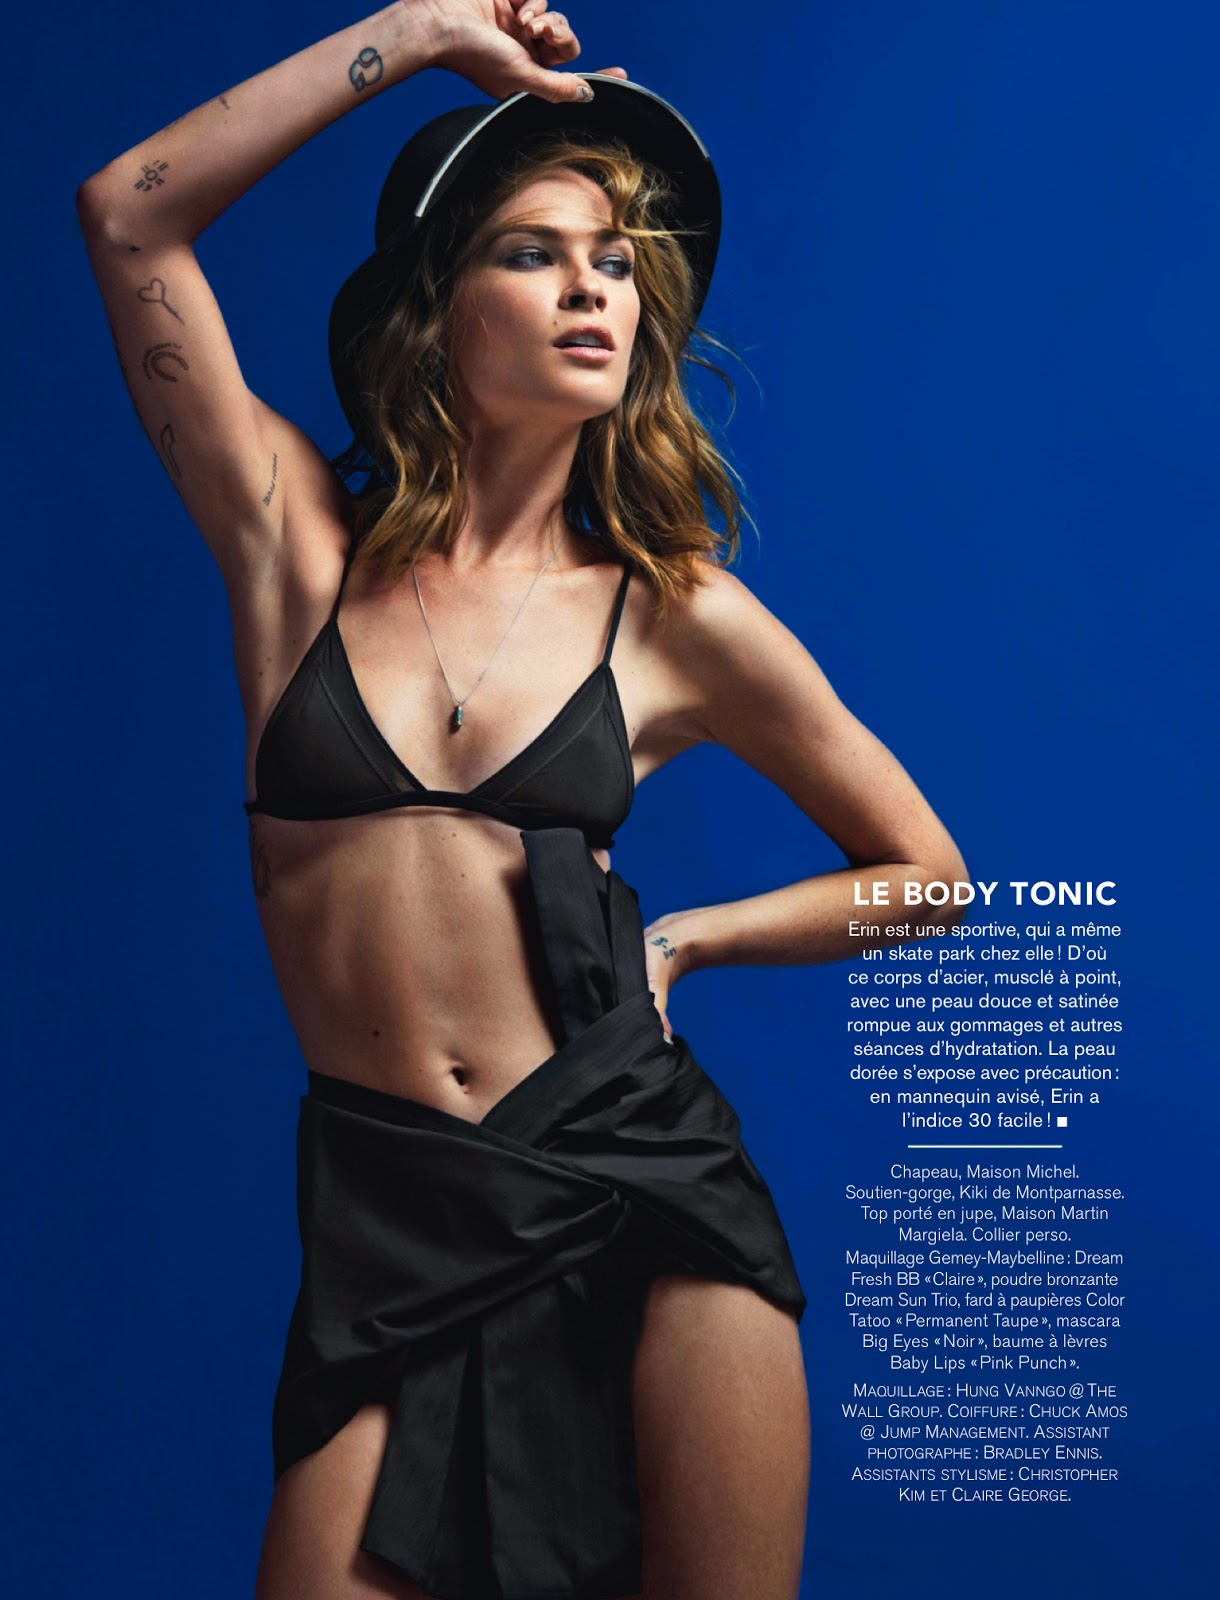 Erin Wasson For Free People March 2014 Catalog: Le Top Taille Dans Le Rock: Erin Wasson By Billy Kidd For